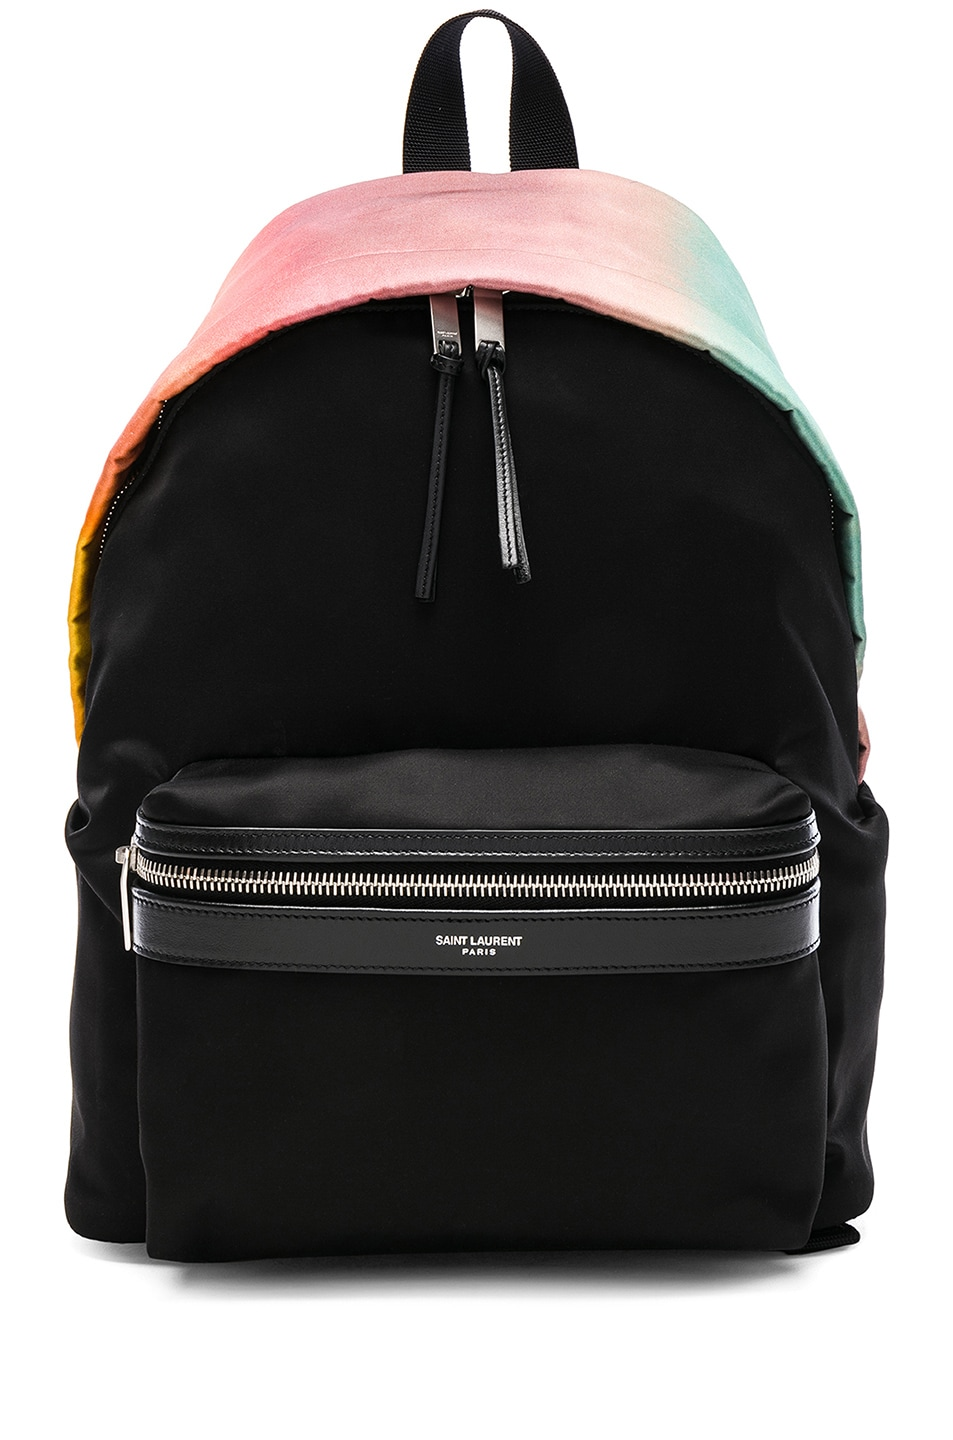 City Ombre Print Satin Backpack - Pink